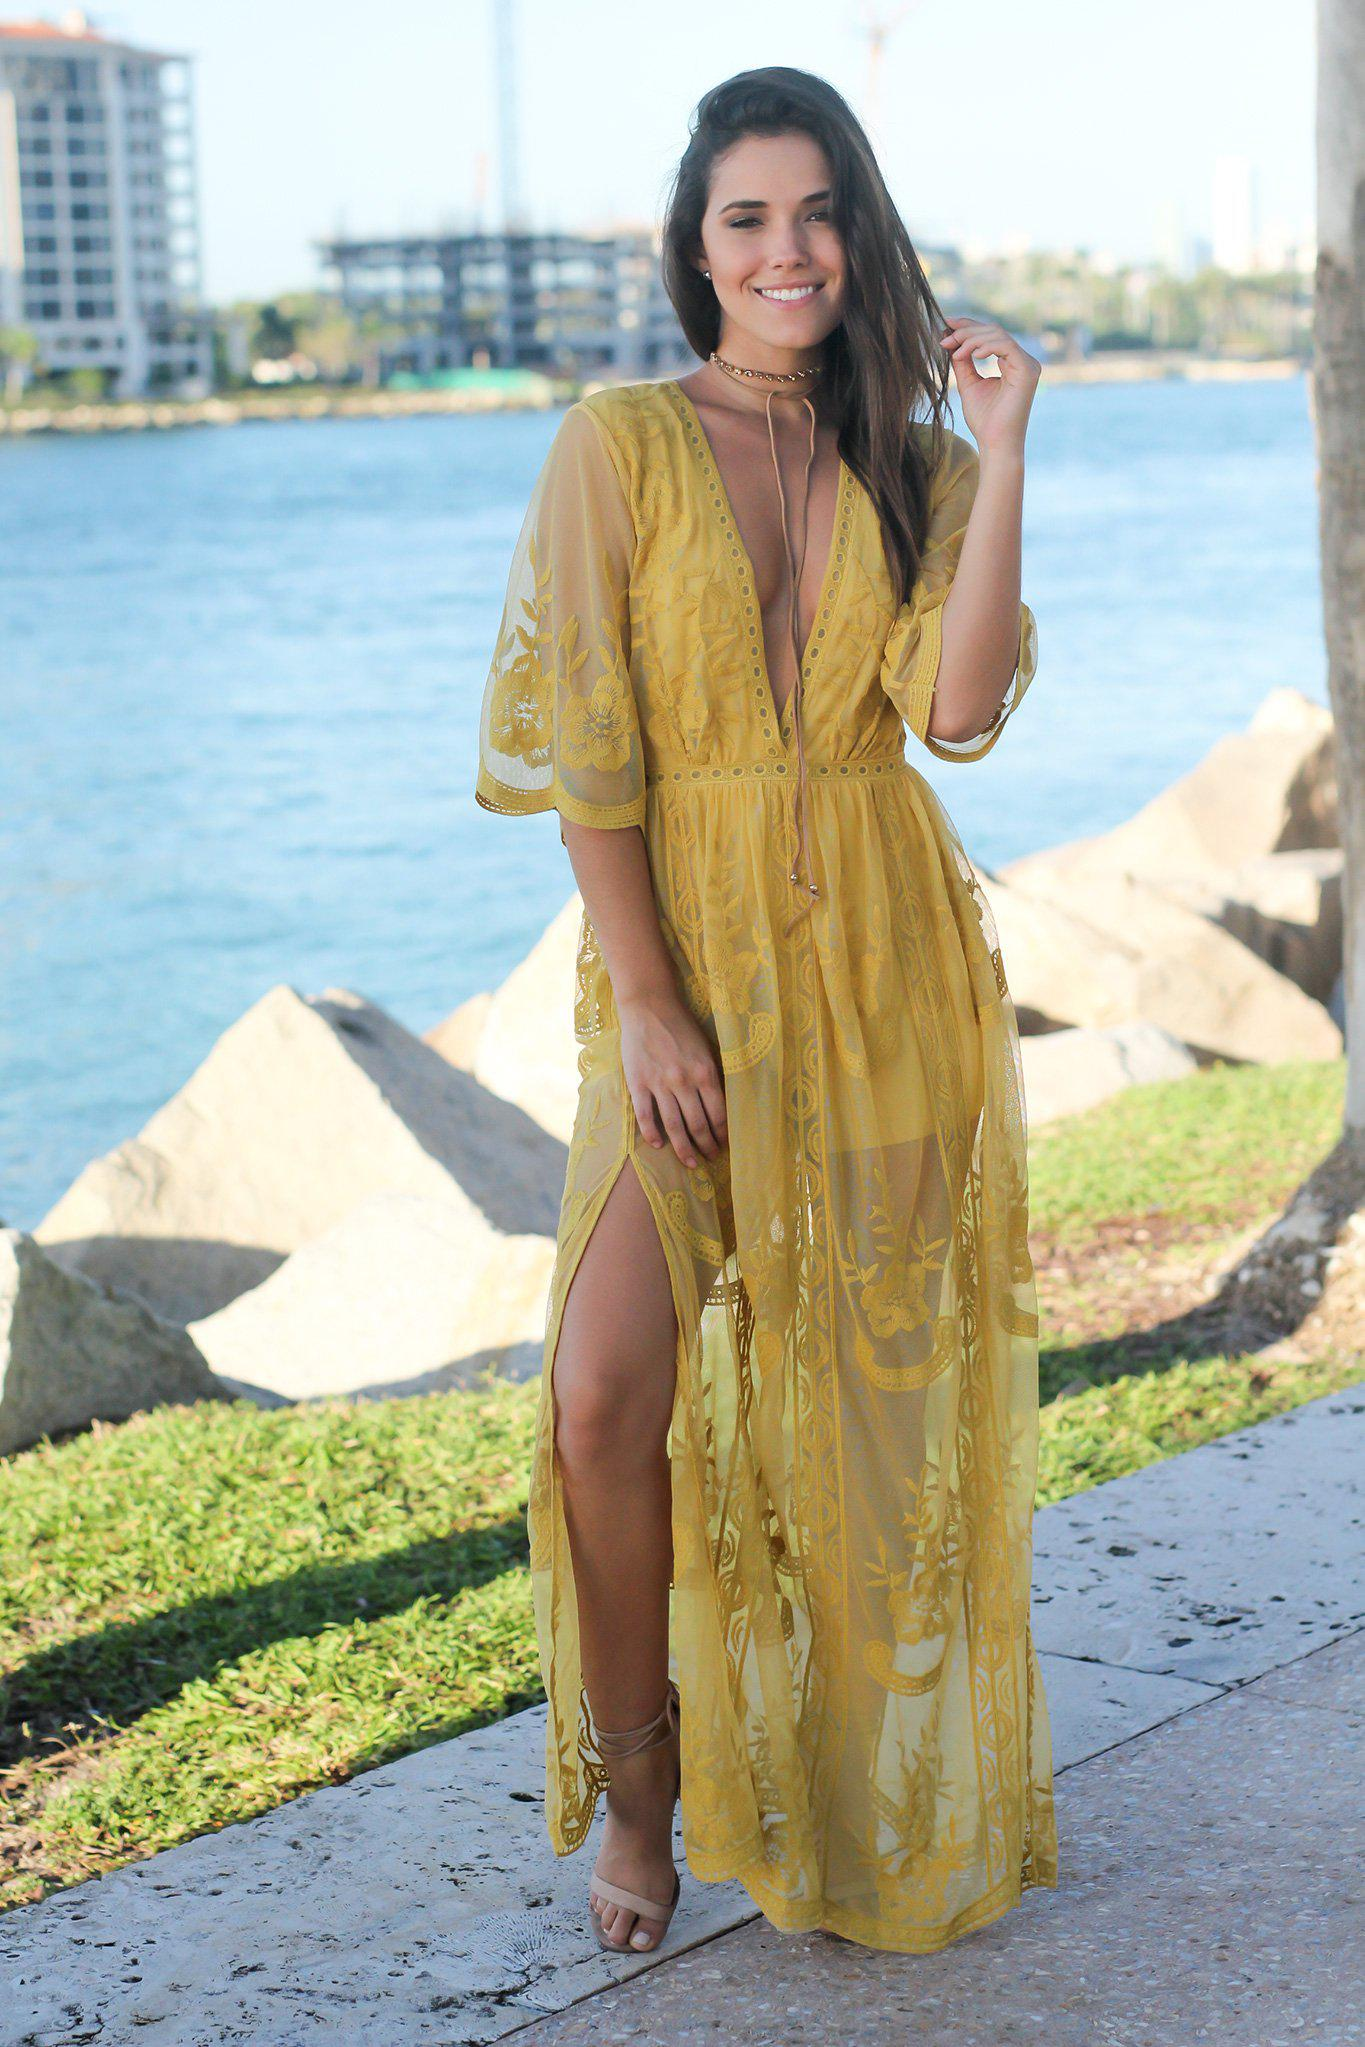 bcd5d9bbd289 Lace Romper  Rompers  Online Boutiques  Mustard Lace Maxi Romper  Womens  Boutiques